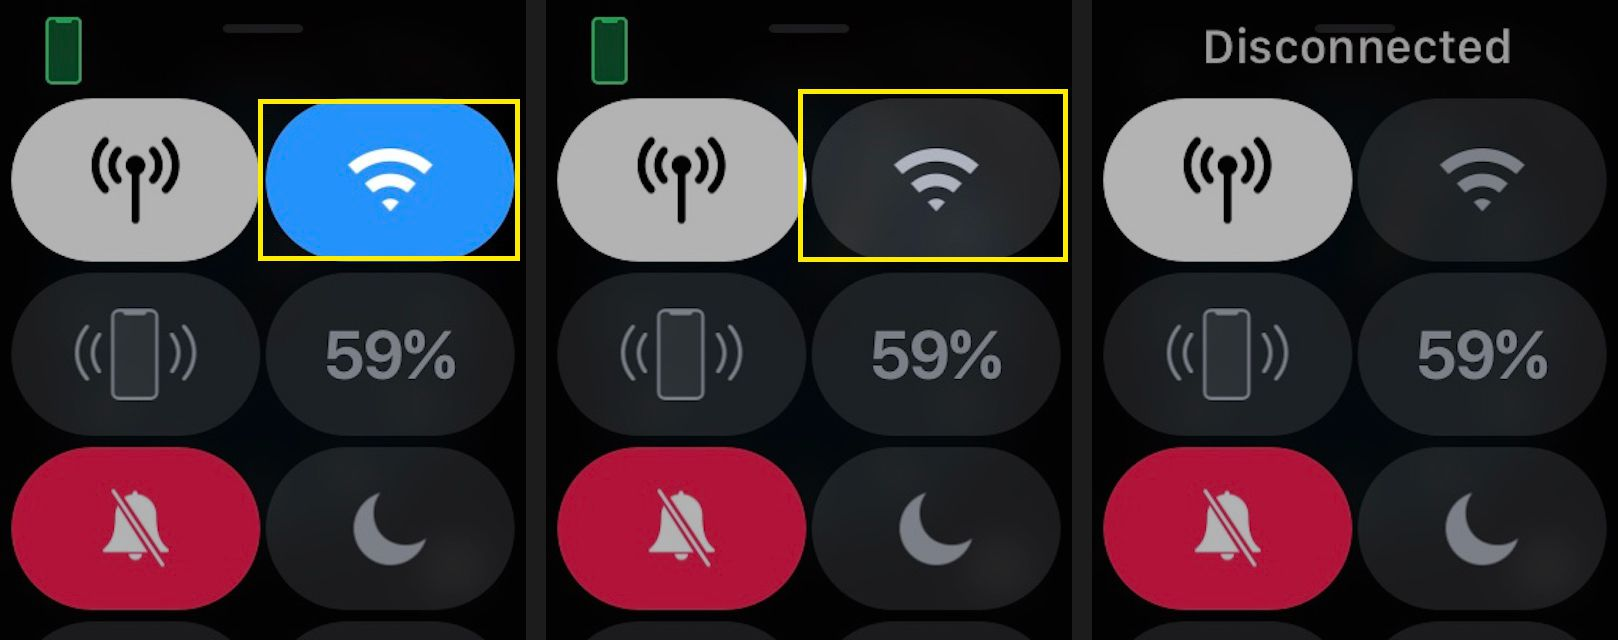 Tap the Wi-Fi icon to turn Wi-Fi on or off.